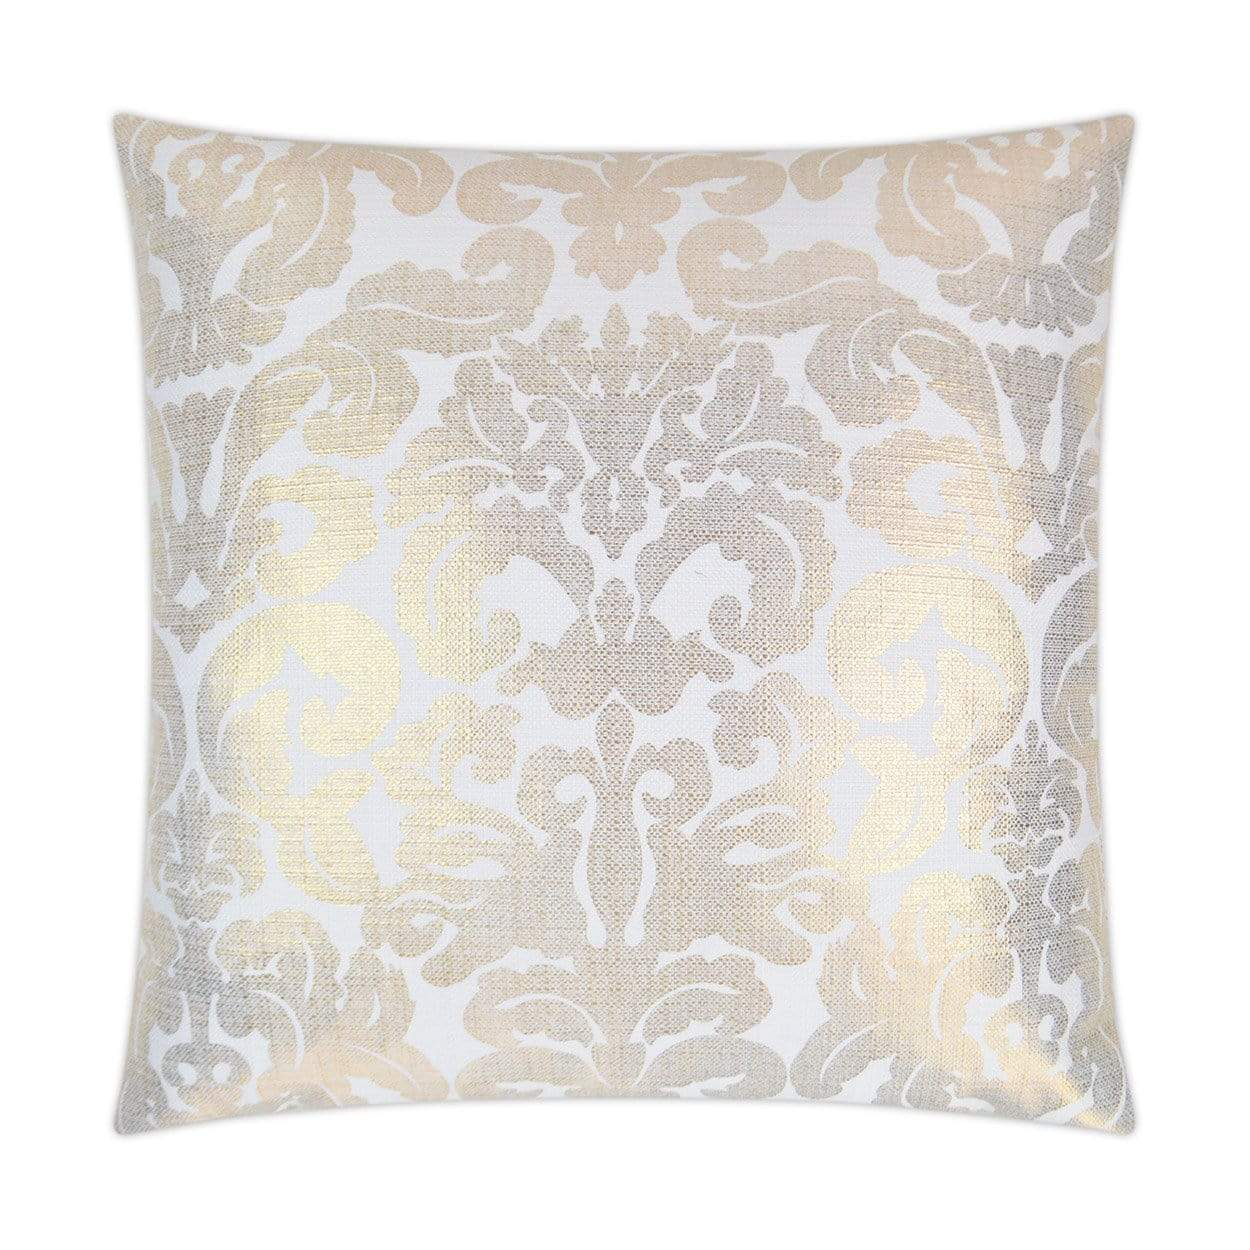 D.V. Kap D.V. Kap Refractor Pillow - Available in 2 Colors Golden 3304-G